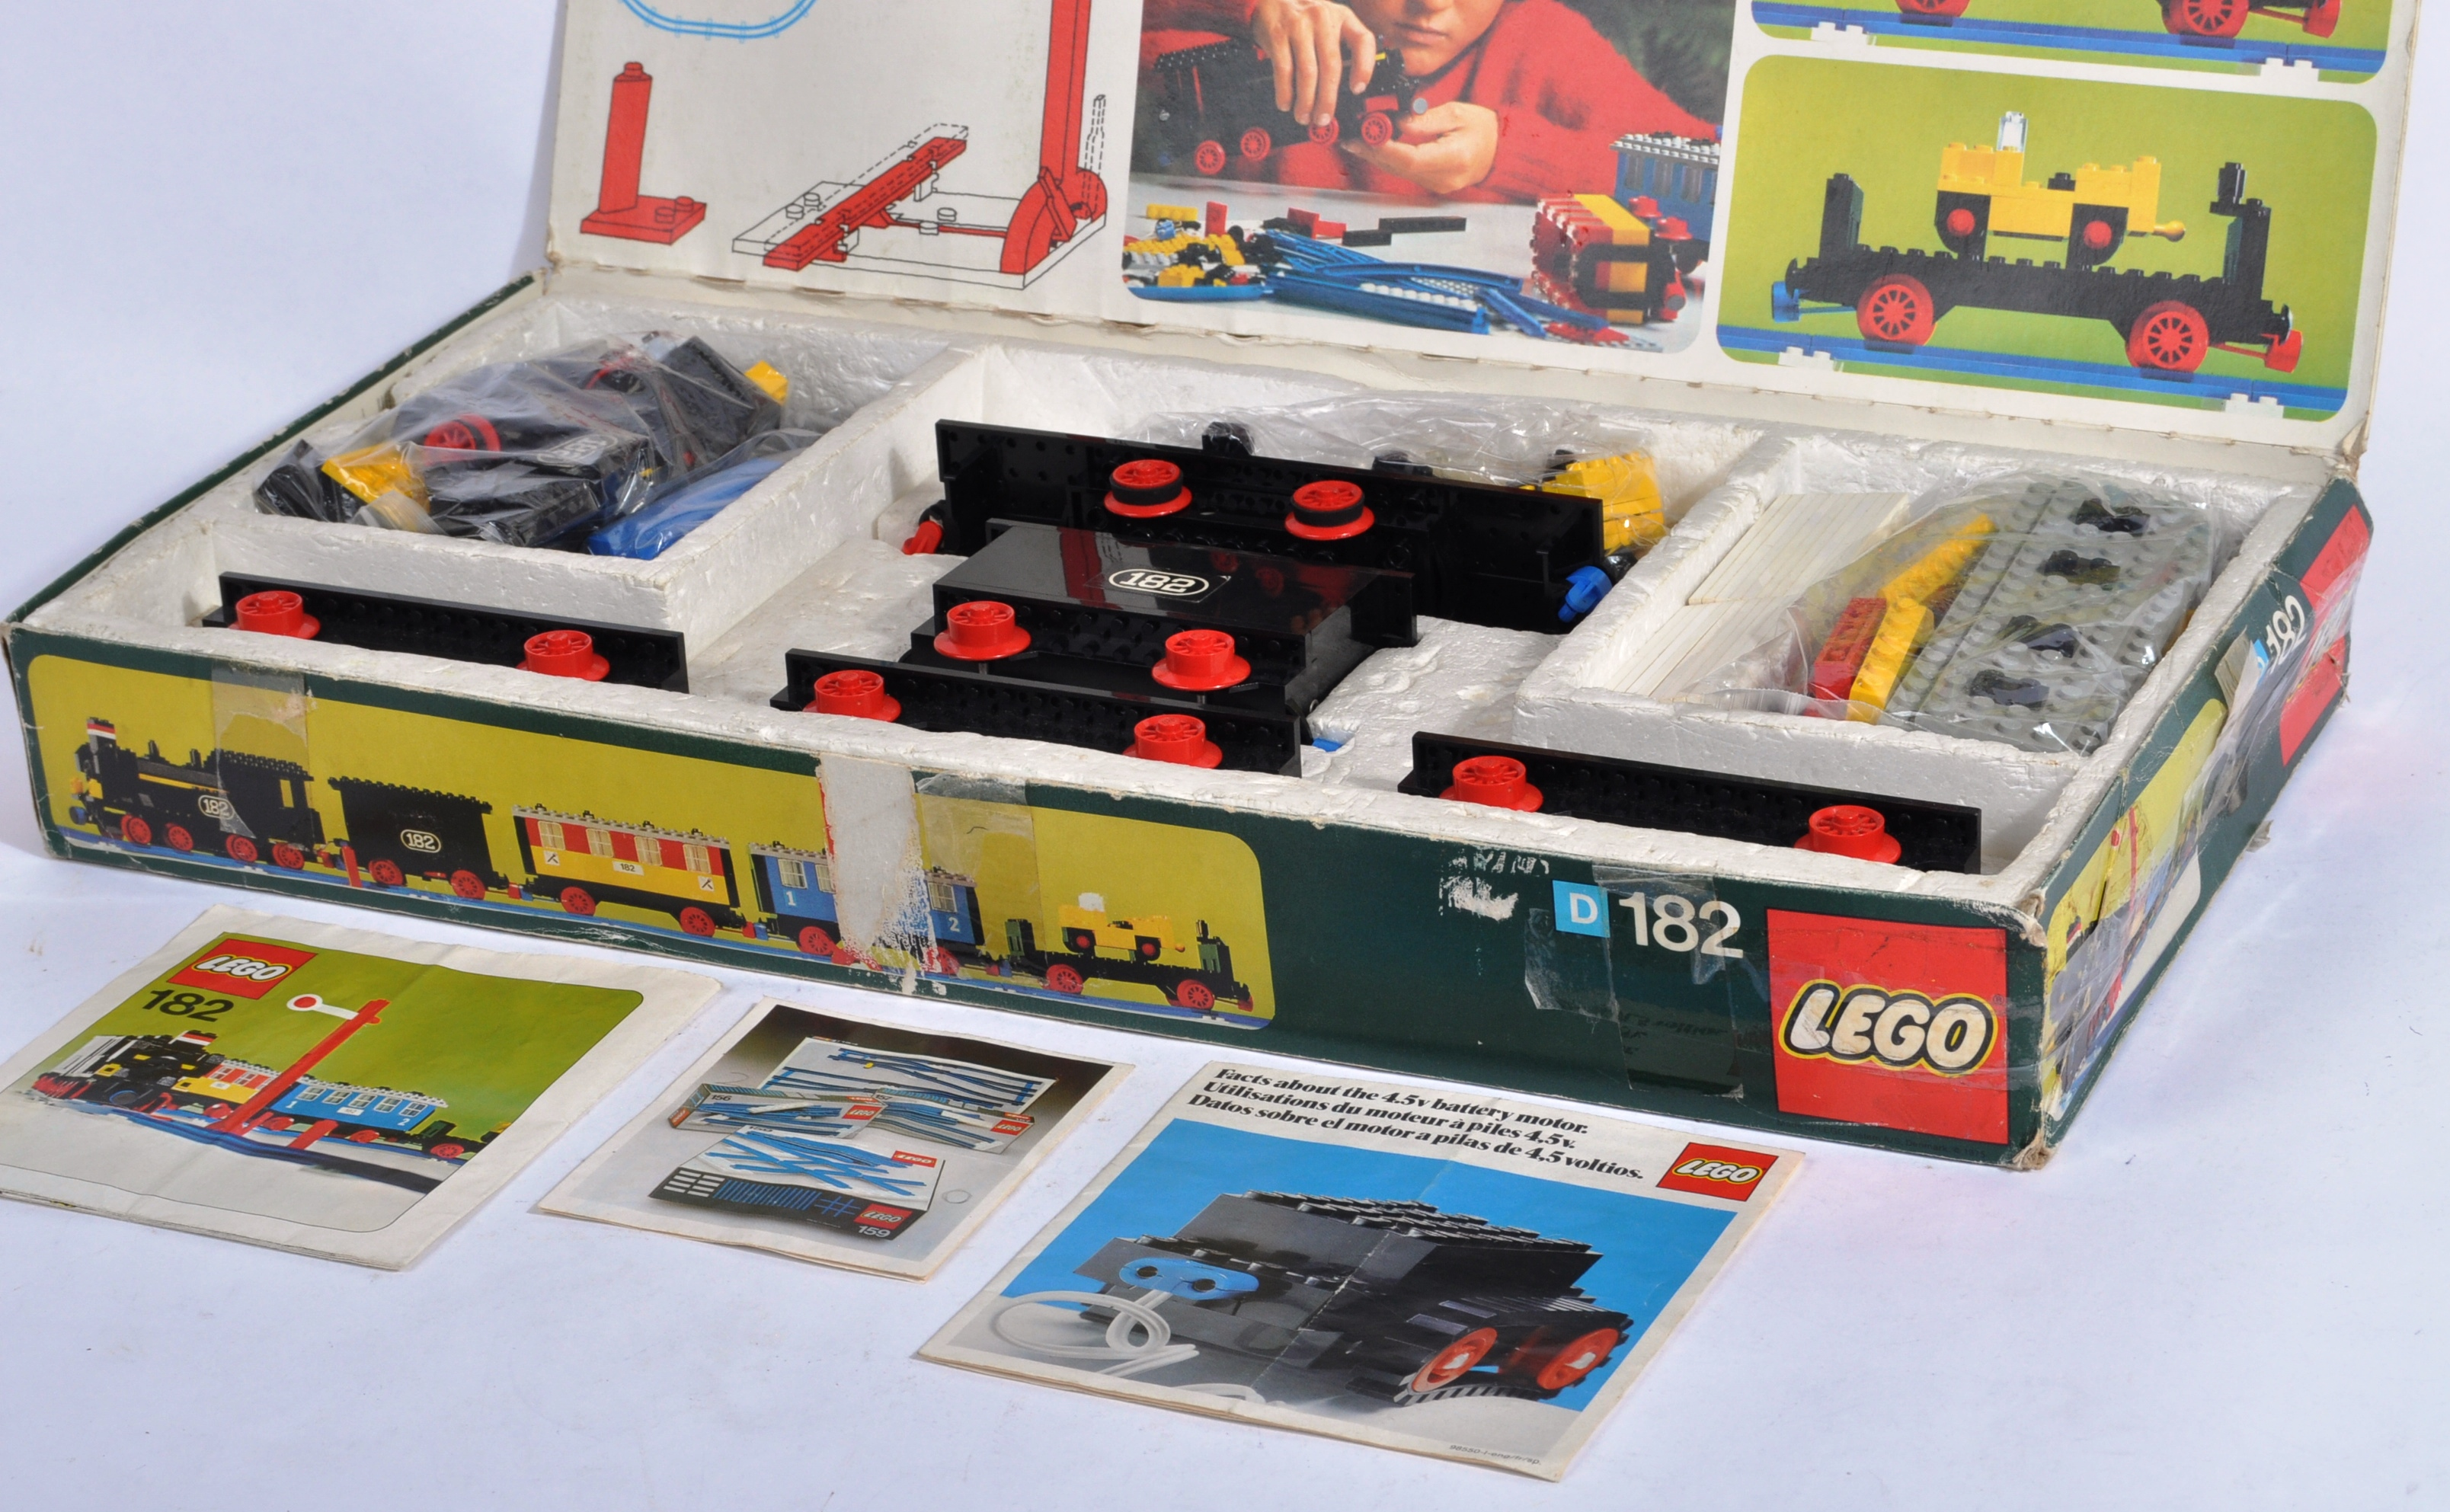 LEGO SET - 182 - TRAIN SET WITH MOTOR AND TRACK - Image 3 of 14